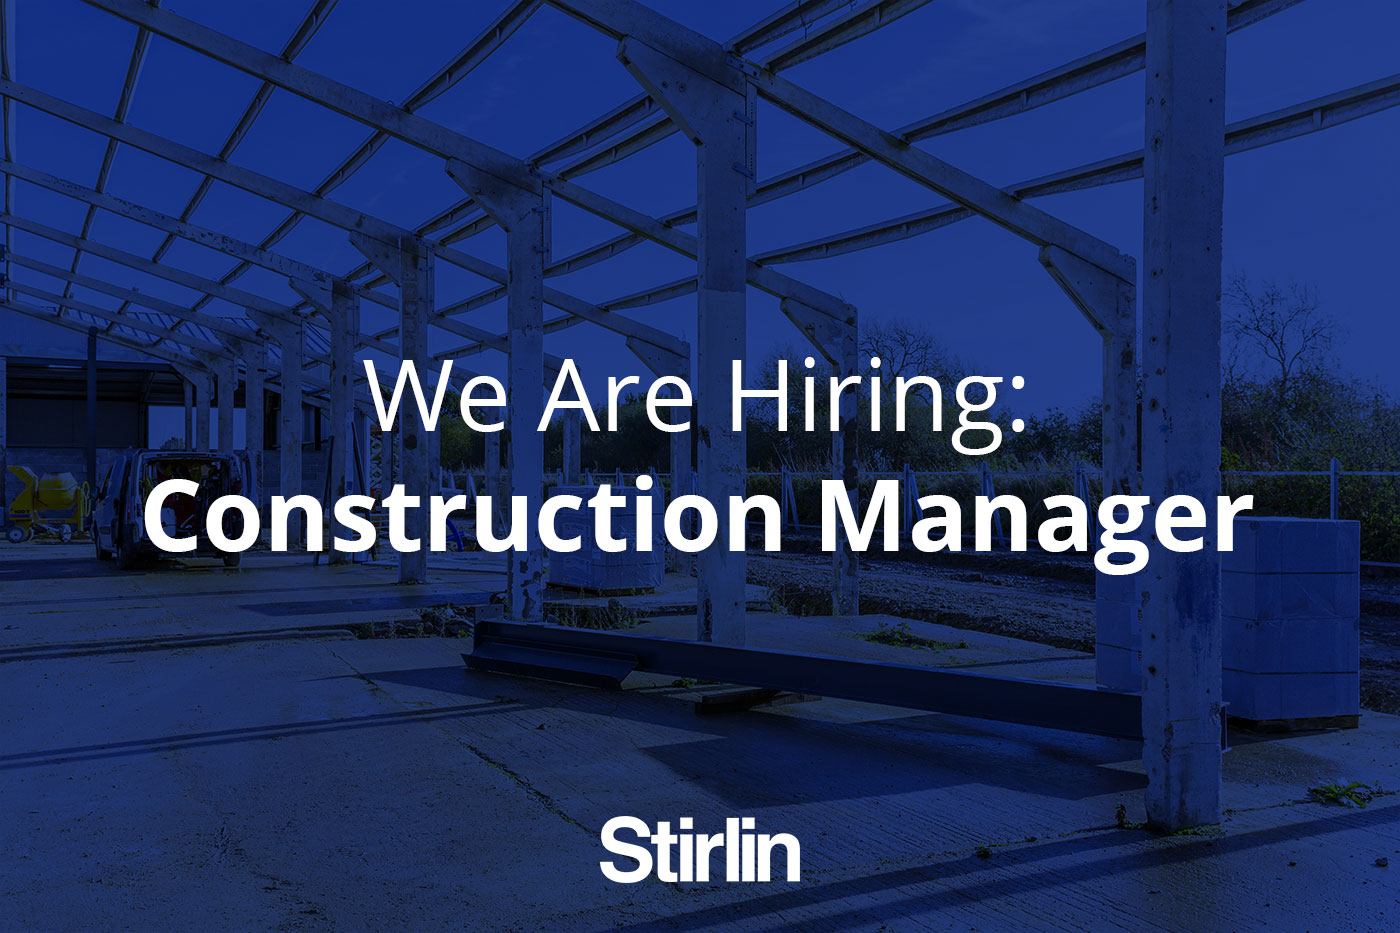 Construction Manager for Malaysia | Find all the Relevant ...